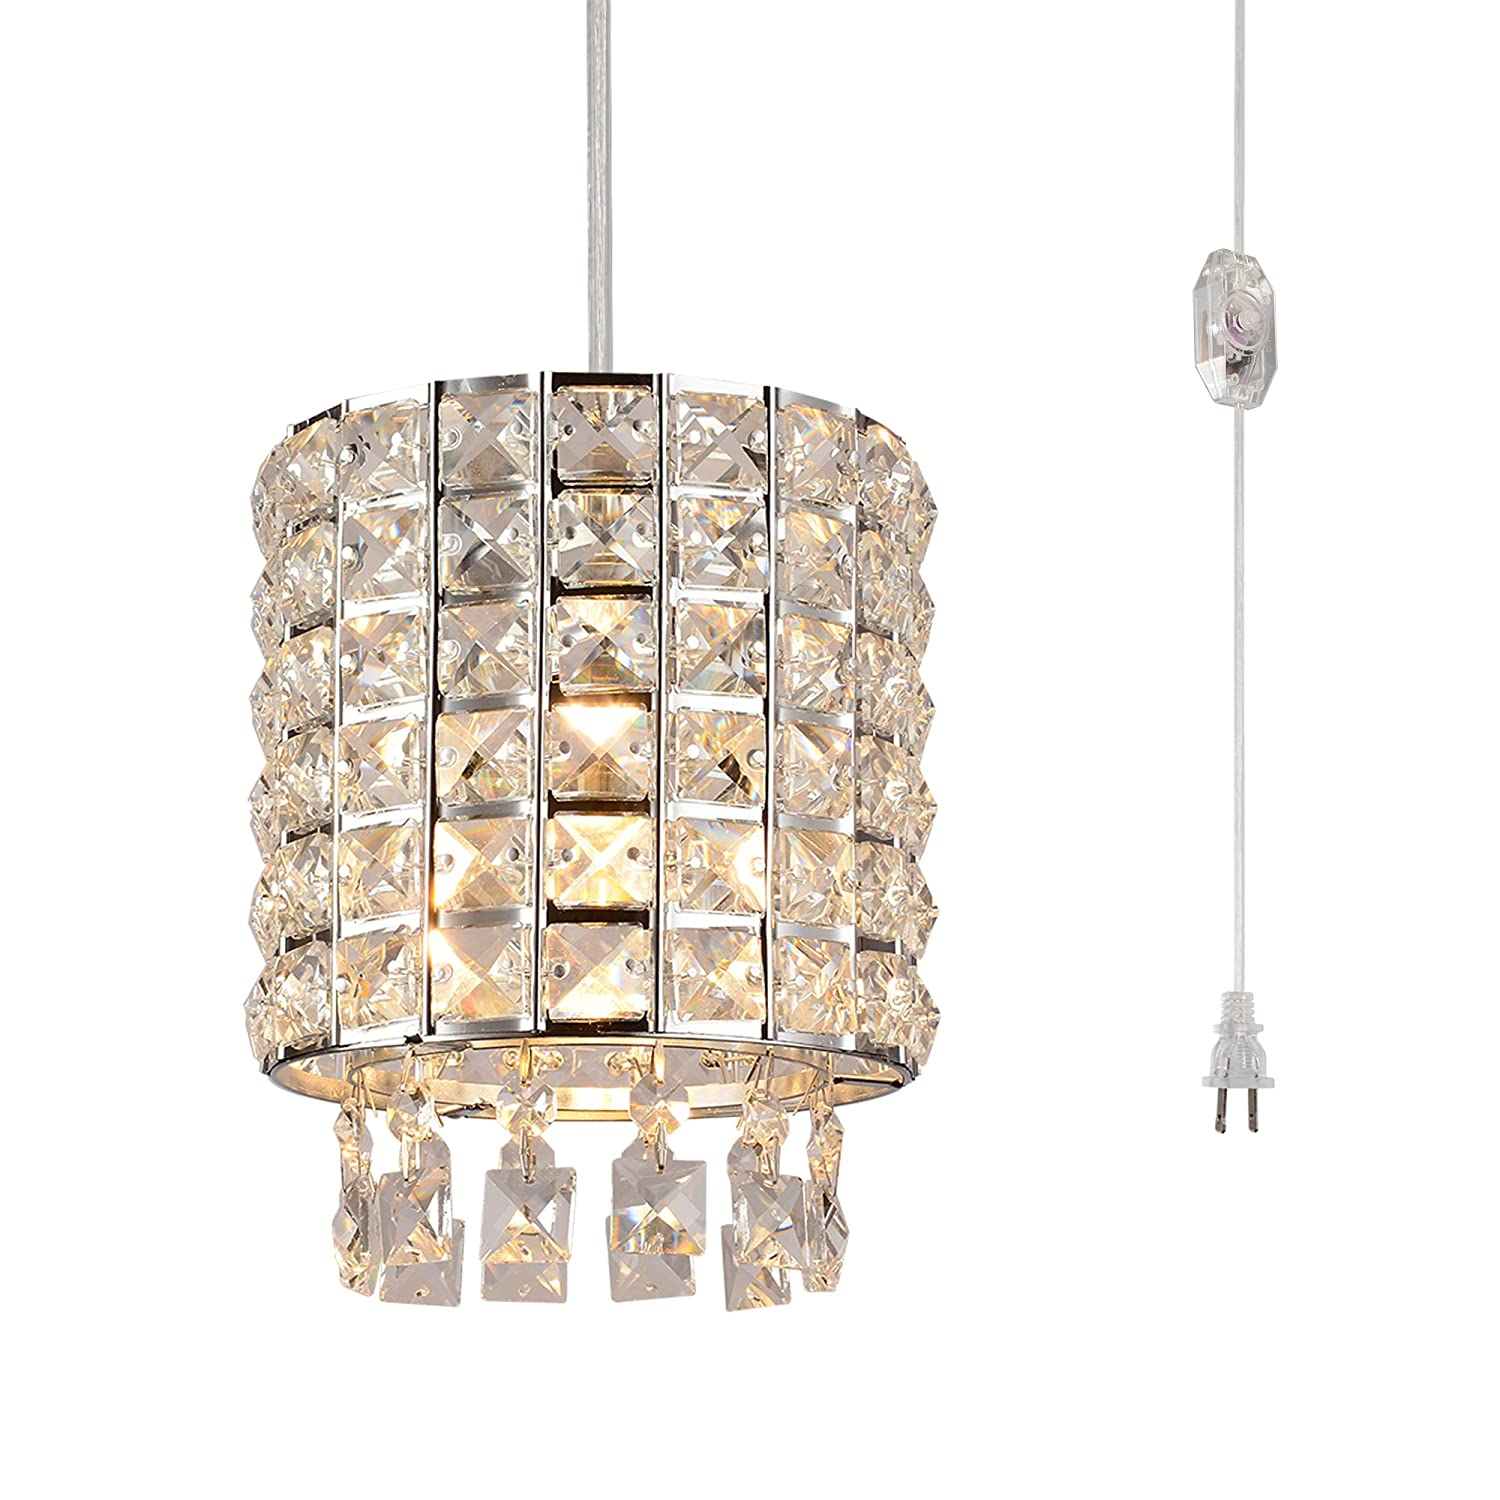 Plug in Modern Crystal Chandelier Swag Pendant Light with Clear 16.4